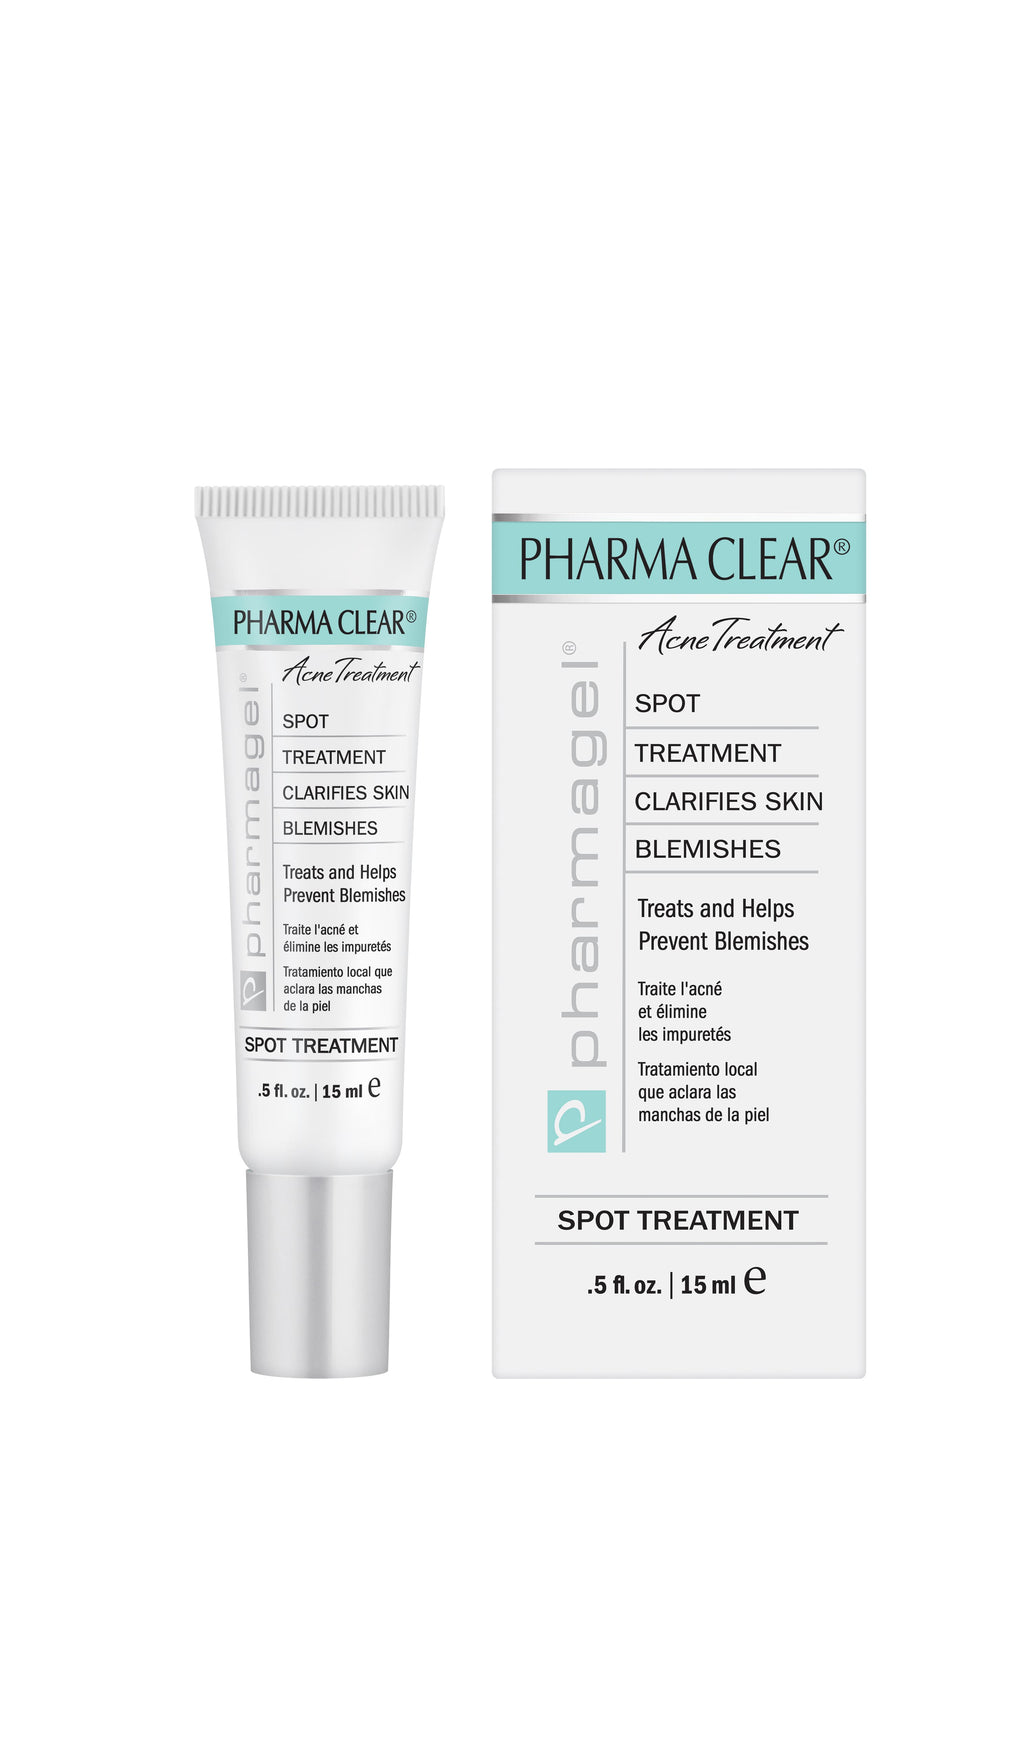 PharmaClear® Acne Treatment System